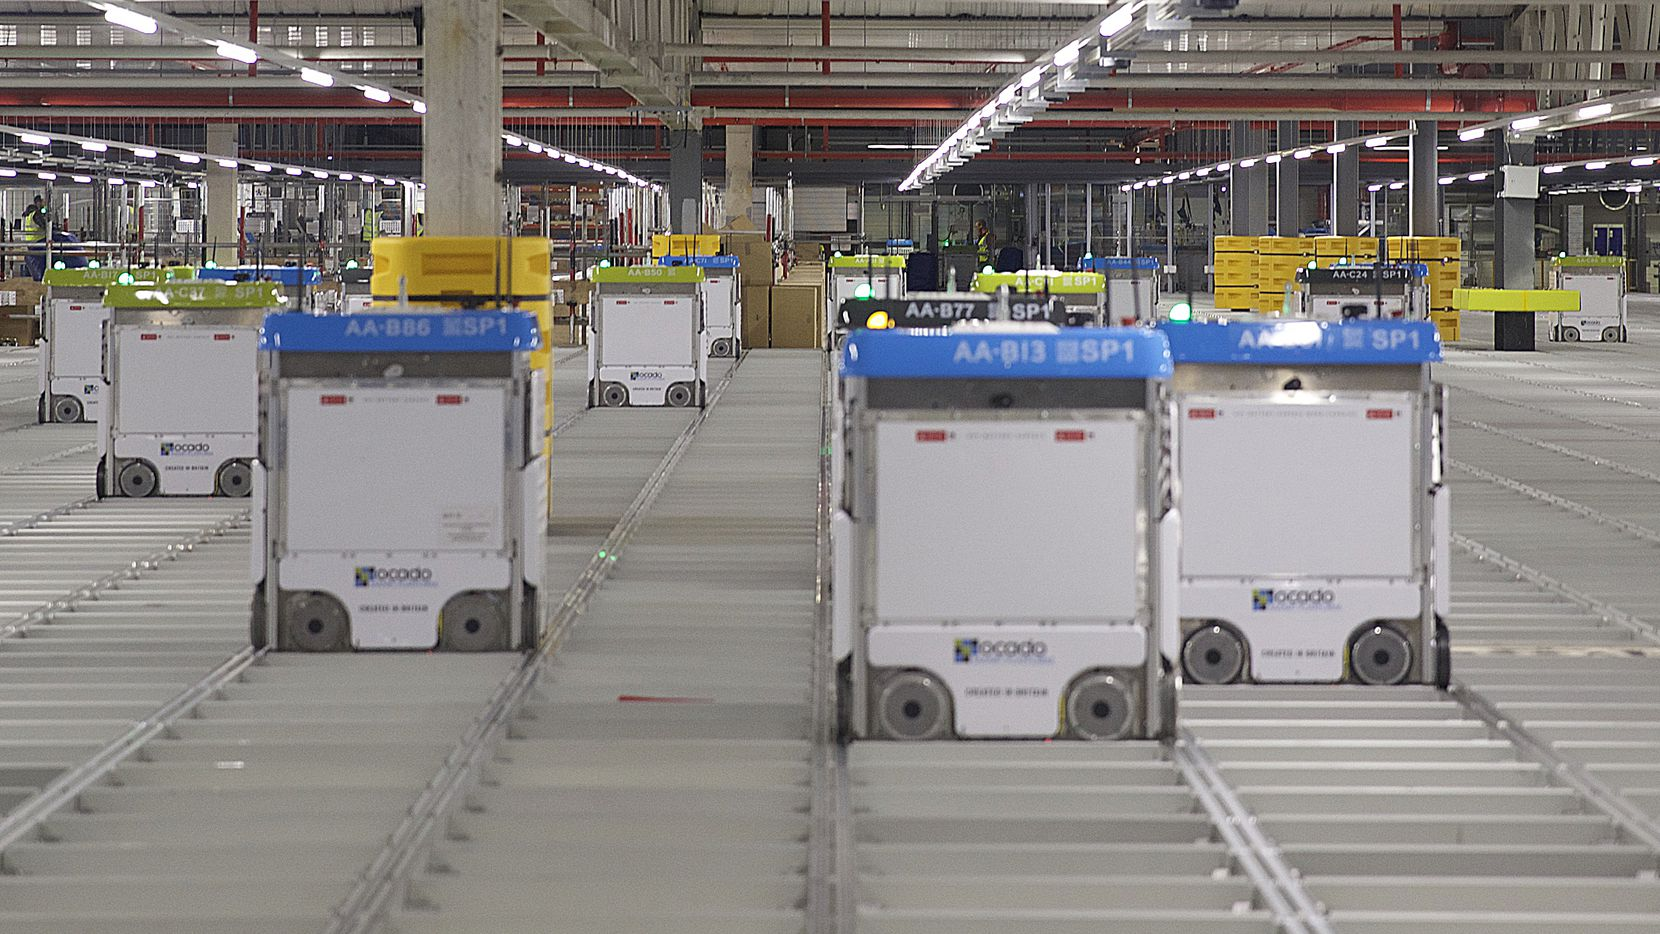 Robots move along a grid at an Ocado fullfilment center in the U.K., where the company has about 600,000 active customers. Ocado entered into an exclusive partnership with Kroger to build the automated online grocery fulfillment centers in the U.S.